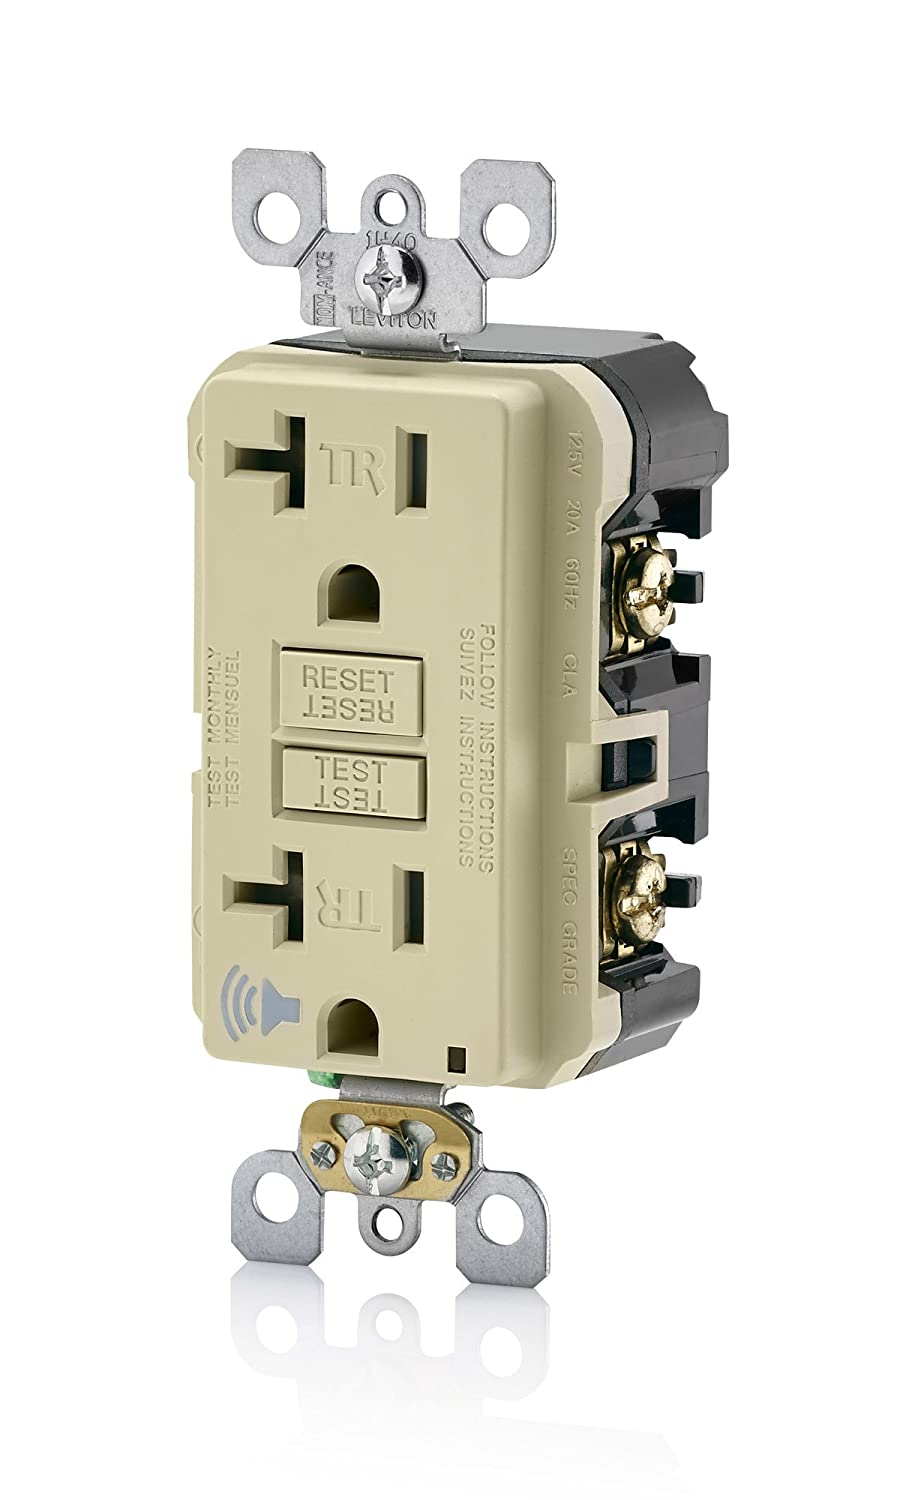 Leviton A7899 I Smartlockpro Slim Gfci With Audible Trip Alert 20 Series High Withstand Voltage Tester Has Exclusive Smart Gfi Circuit Amp 120 Volt Ivory